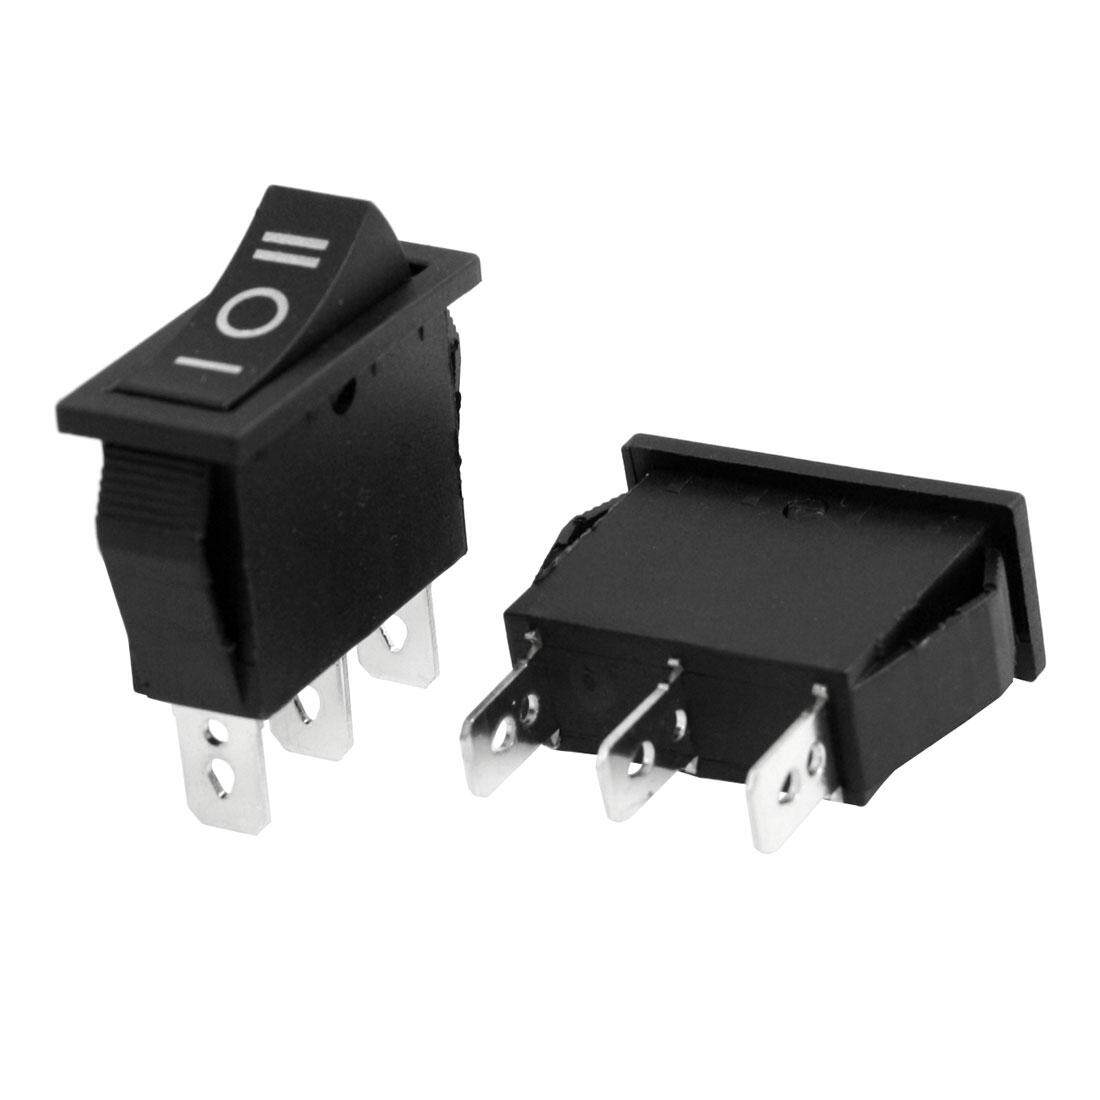 Sell 10 3 20a Cheapest Best Quality Th Store Carling Technologies Circuit Breaker Toggle 75a 125vac 2ka Thb 327